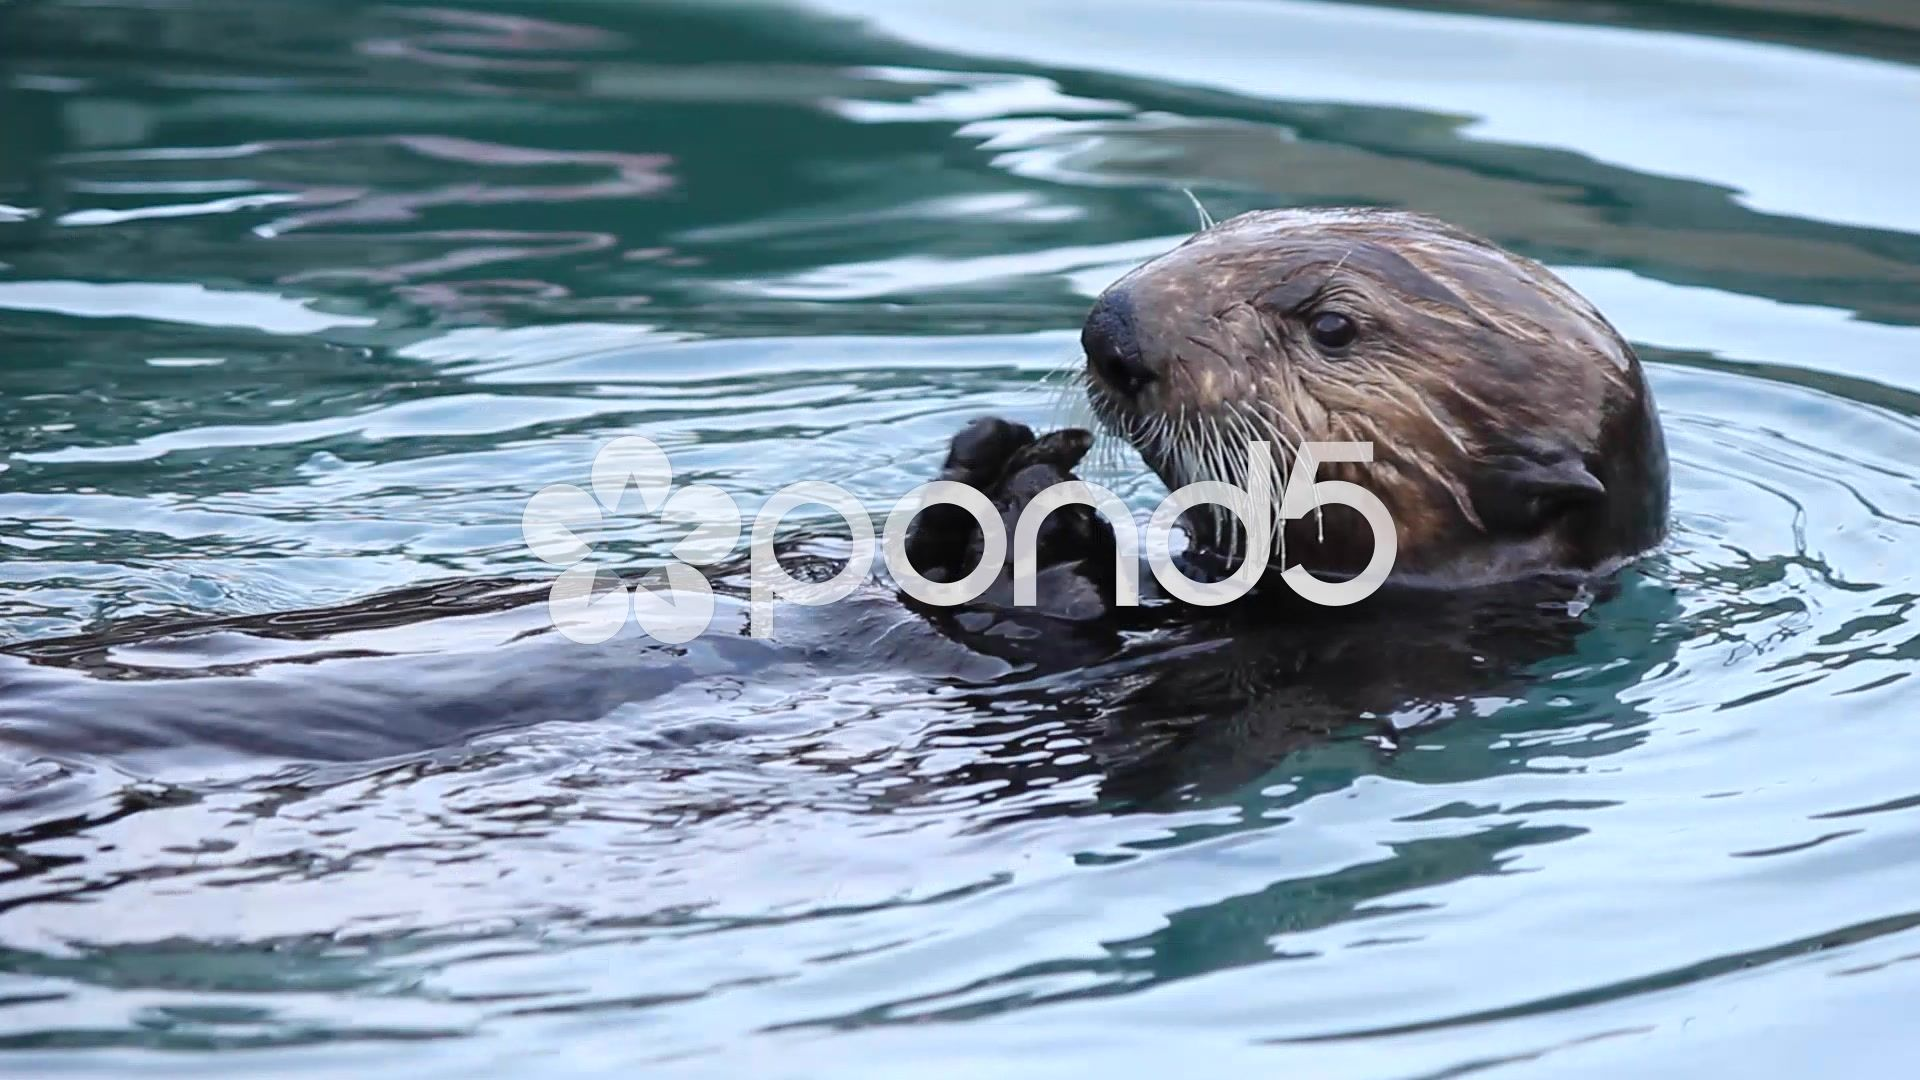 Northern Sea Otter Eating Octopus Photograph by Paul Weaver |Sea Otters Eating Bears